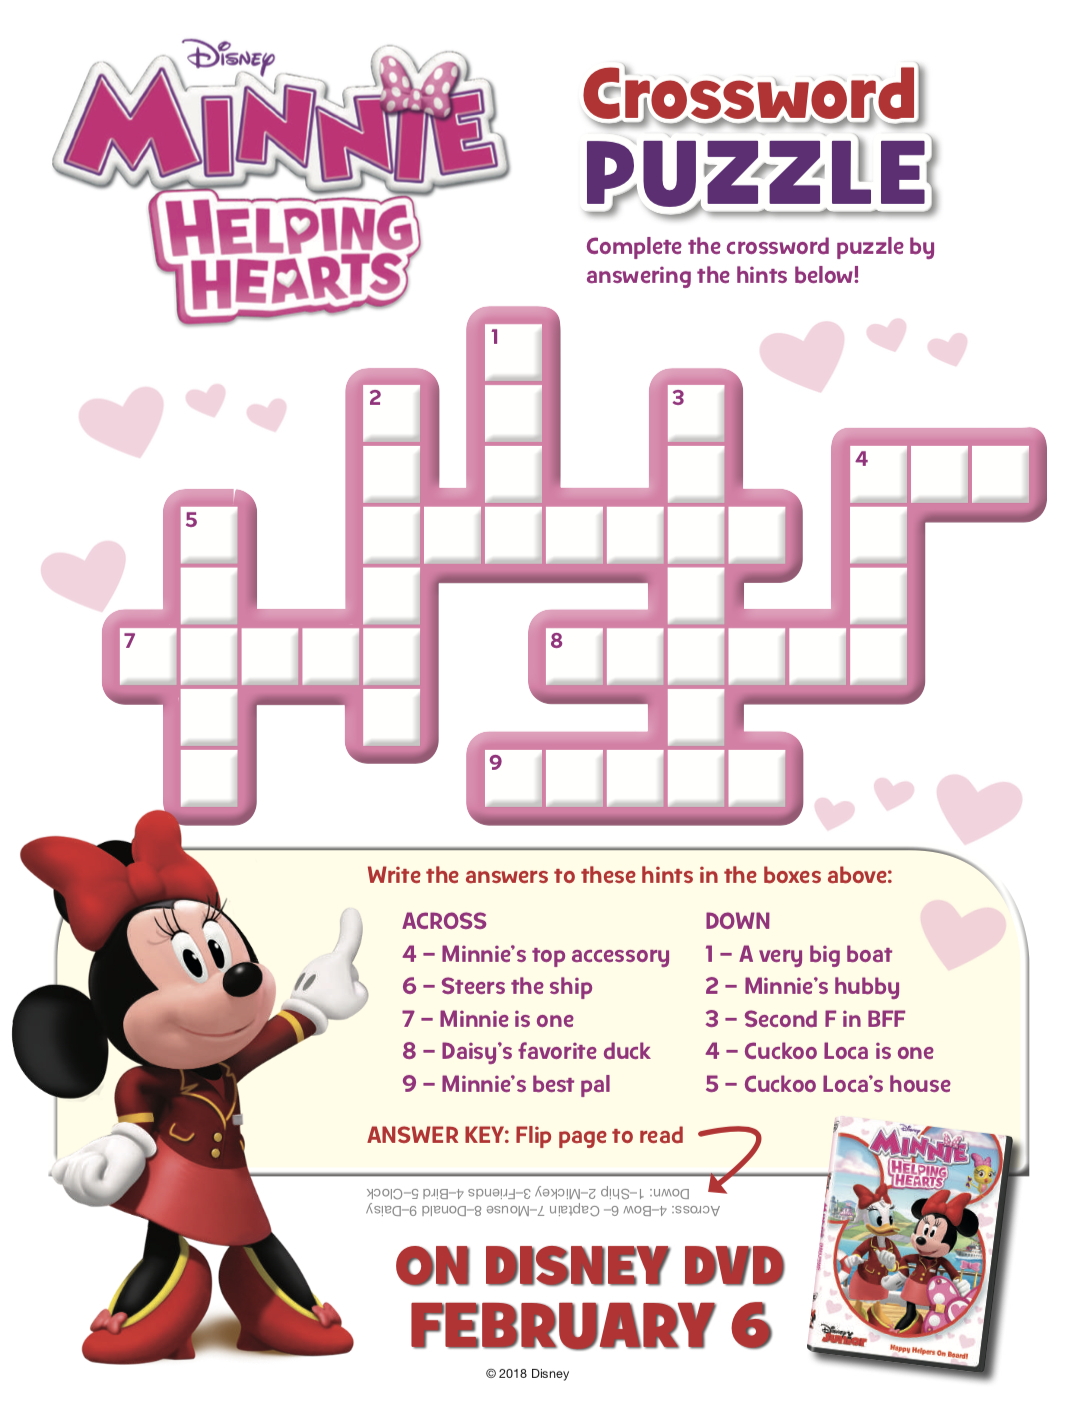 11 Fun Disney Crossword Puzzles | Kittybabylove - Printable Crossword Puzzles Disney Movies